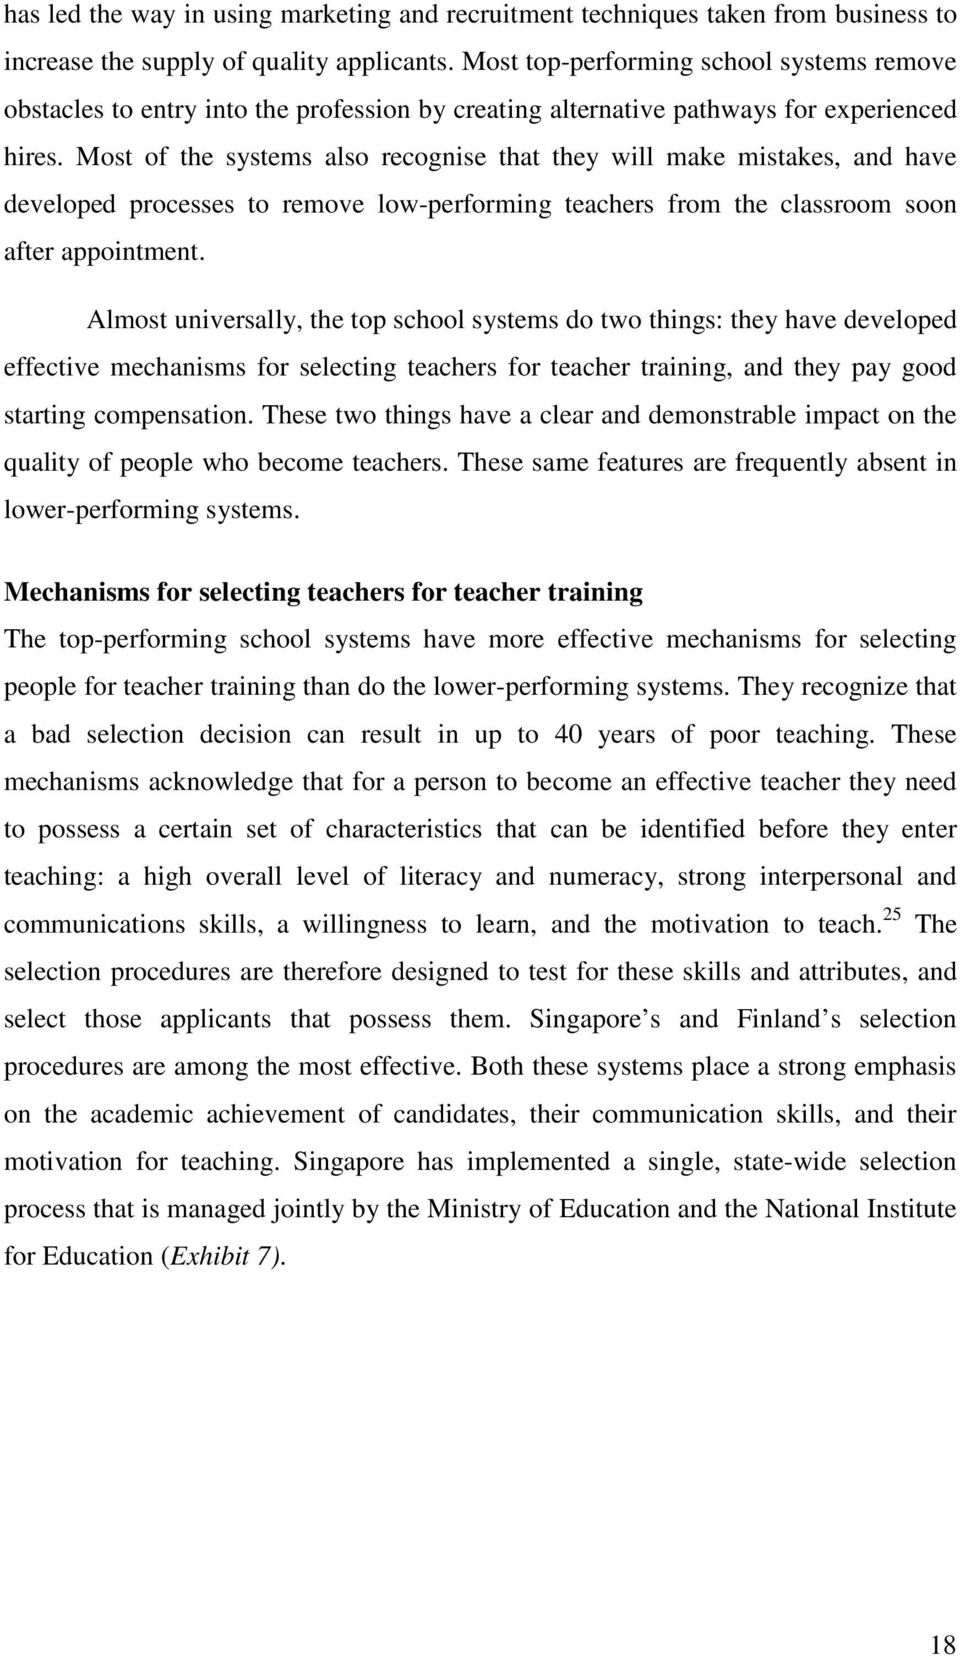 Most of the systems also recognise that they will make mistakes, and have developed processes to remove low-performing teachers from the classroom soon after appointment.